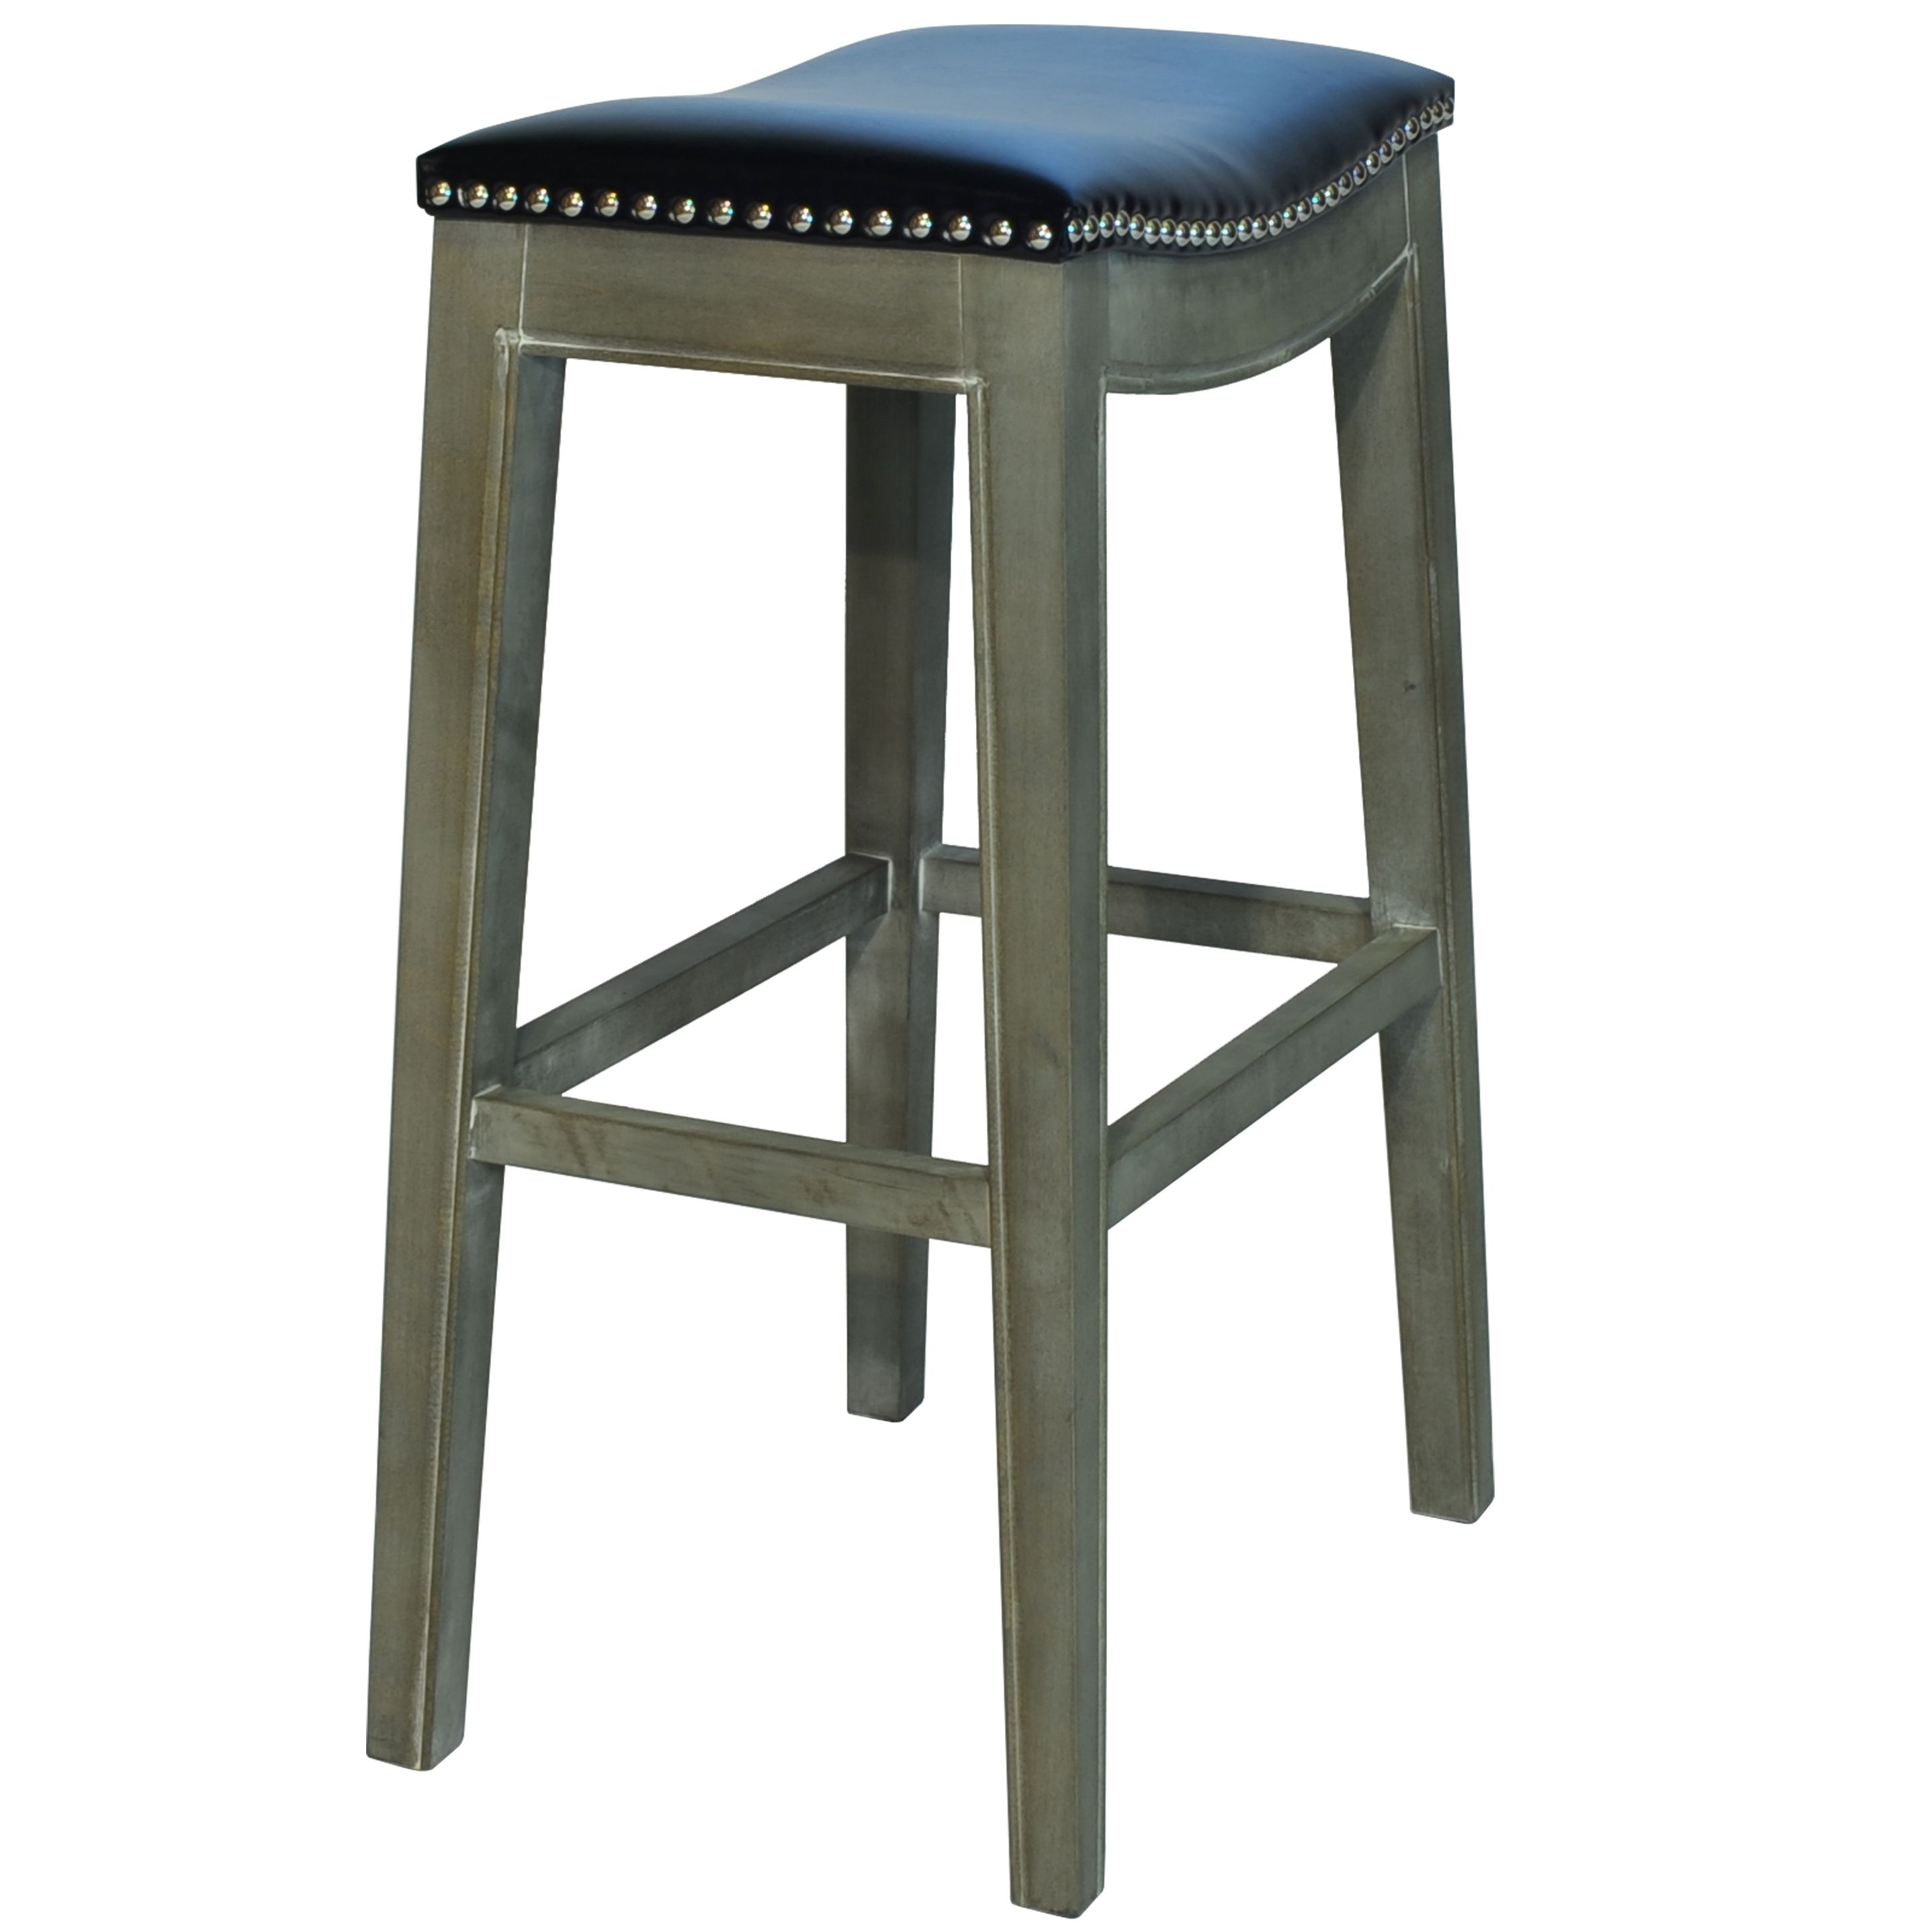 Elmo Bonded Leather Bar Stool Mystique Gray Frame, Black/198631B 23